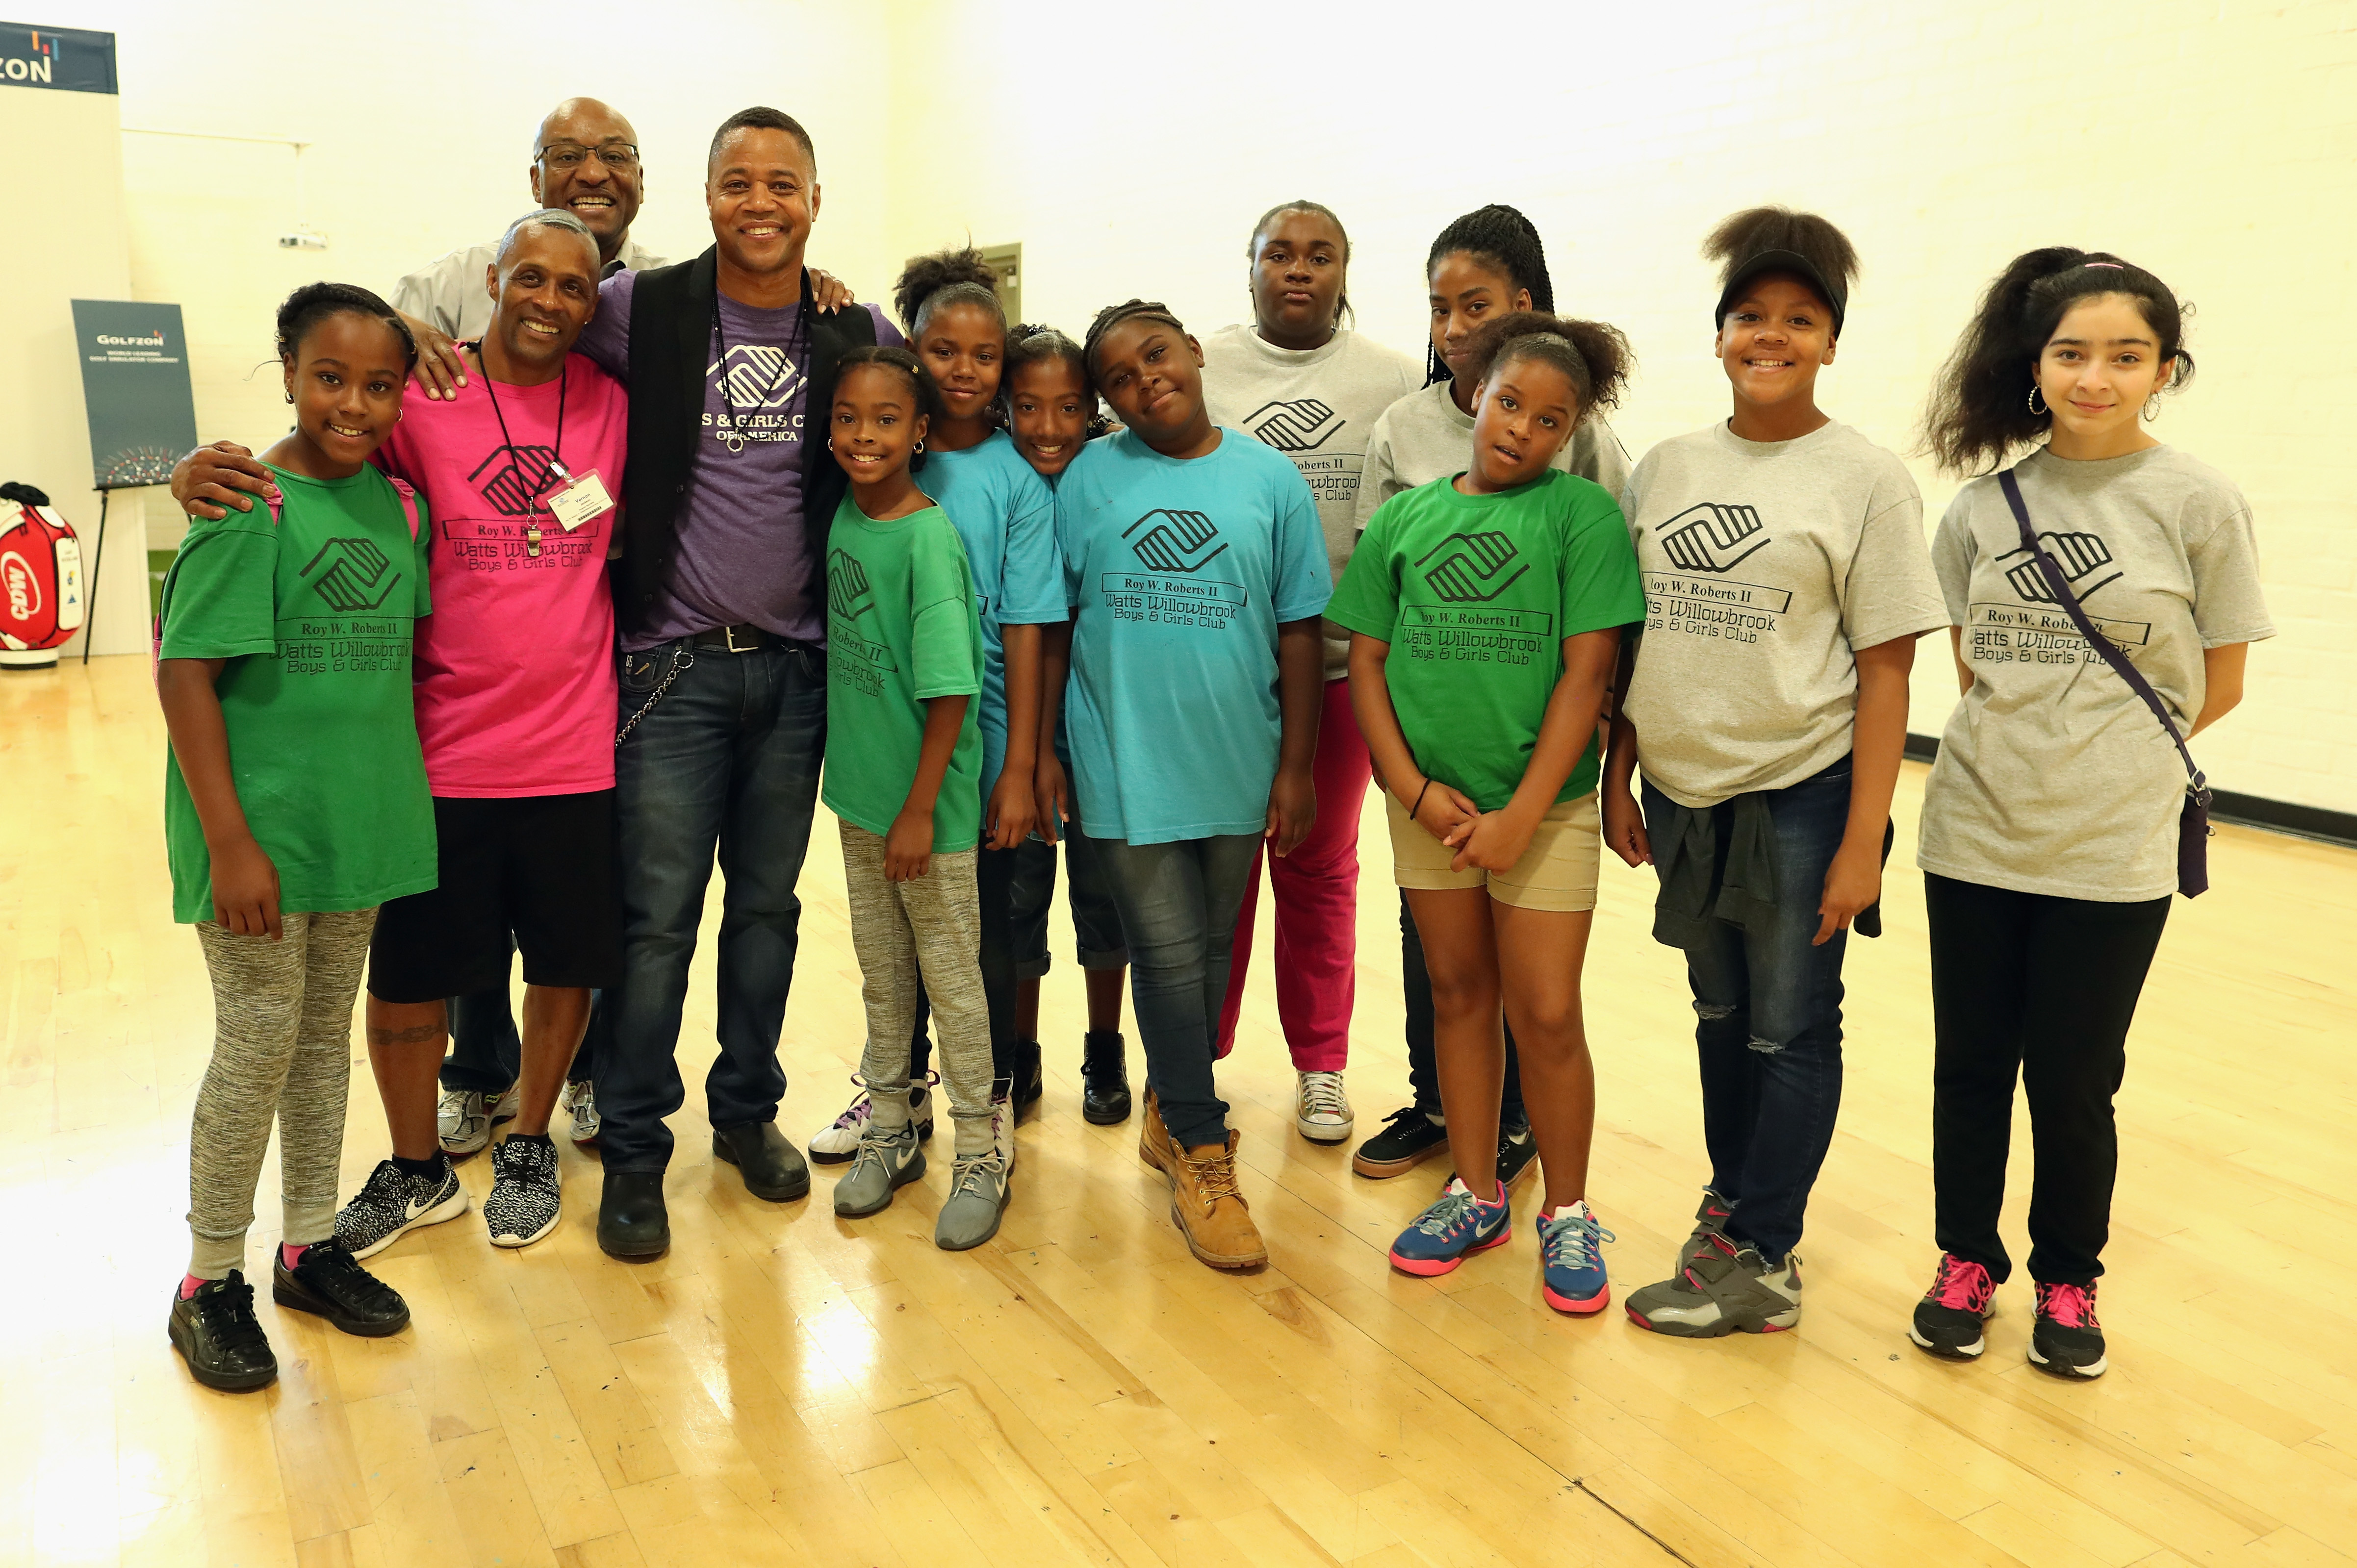 Cuba Gooding Jr. on his personal experience with the Boys & Girls Club: